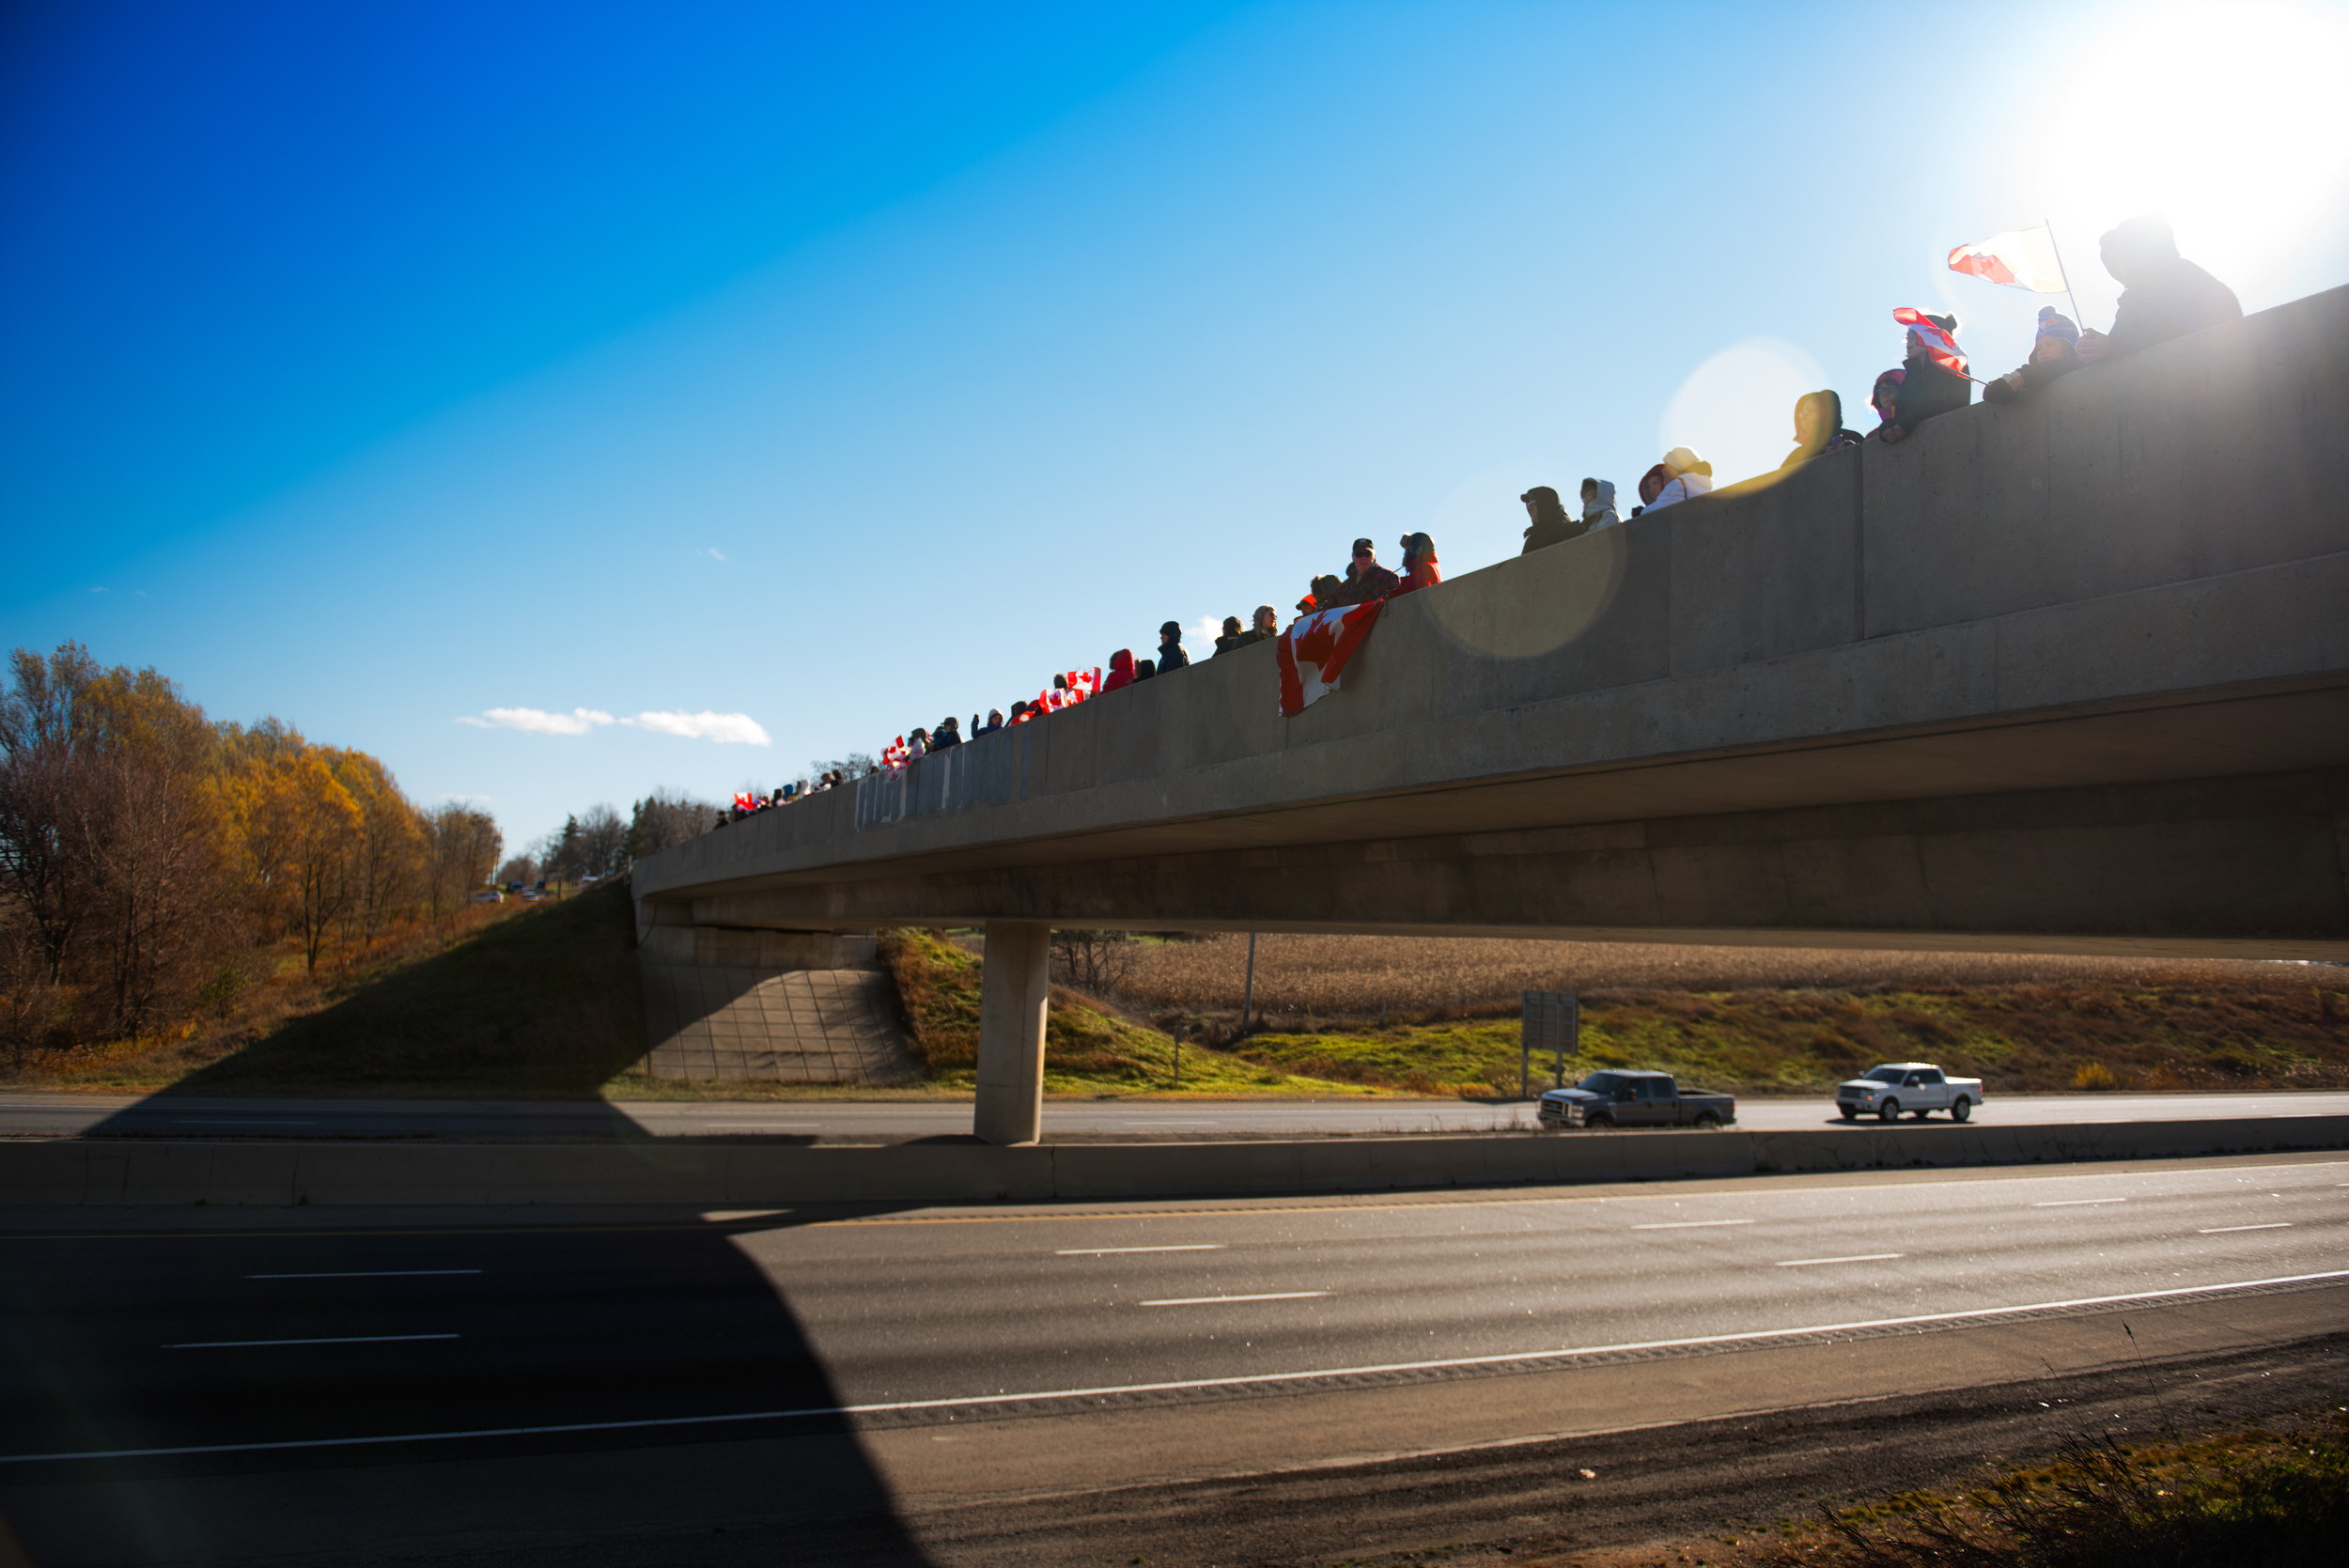 The Crowd Gathers to pay respects to John Gallagher as he passes in Woodstock Ontario at the Dodge Line bridge. A lot more people showed up, including Beachville Fire.. this was about 2 hours before he arrived.